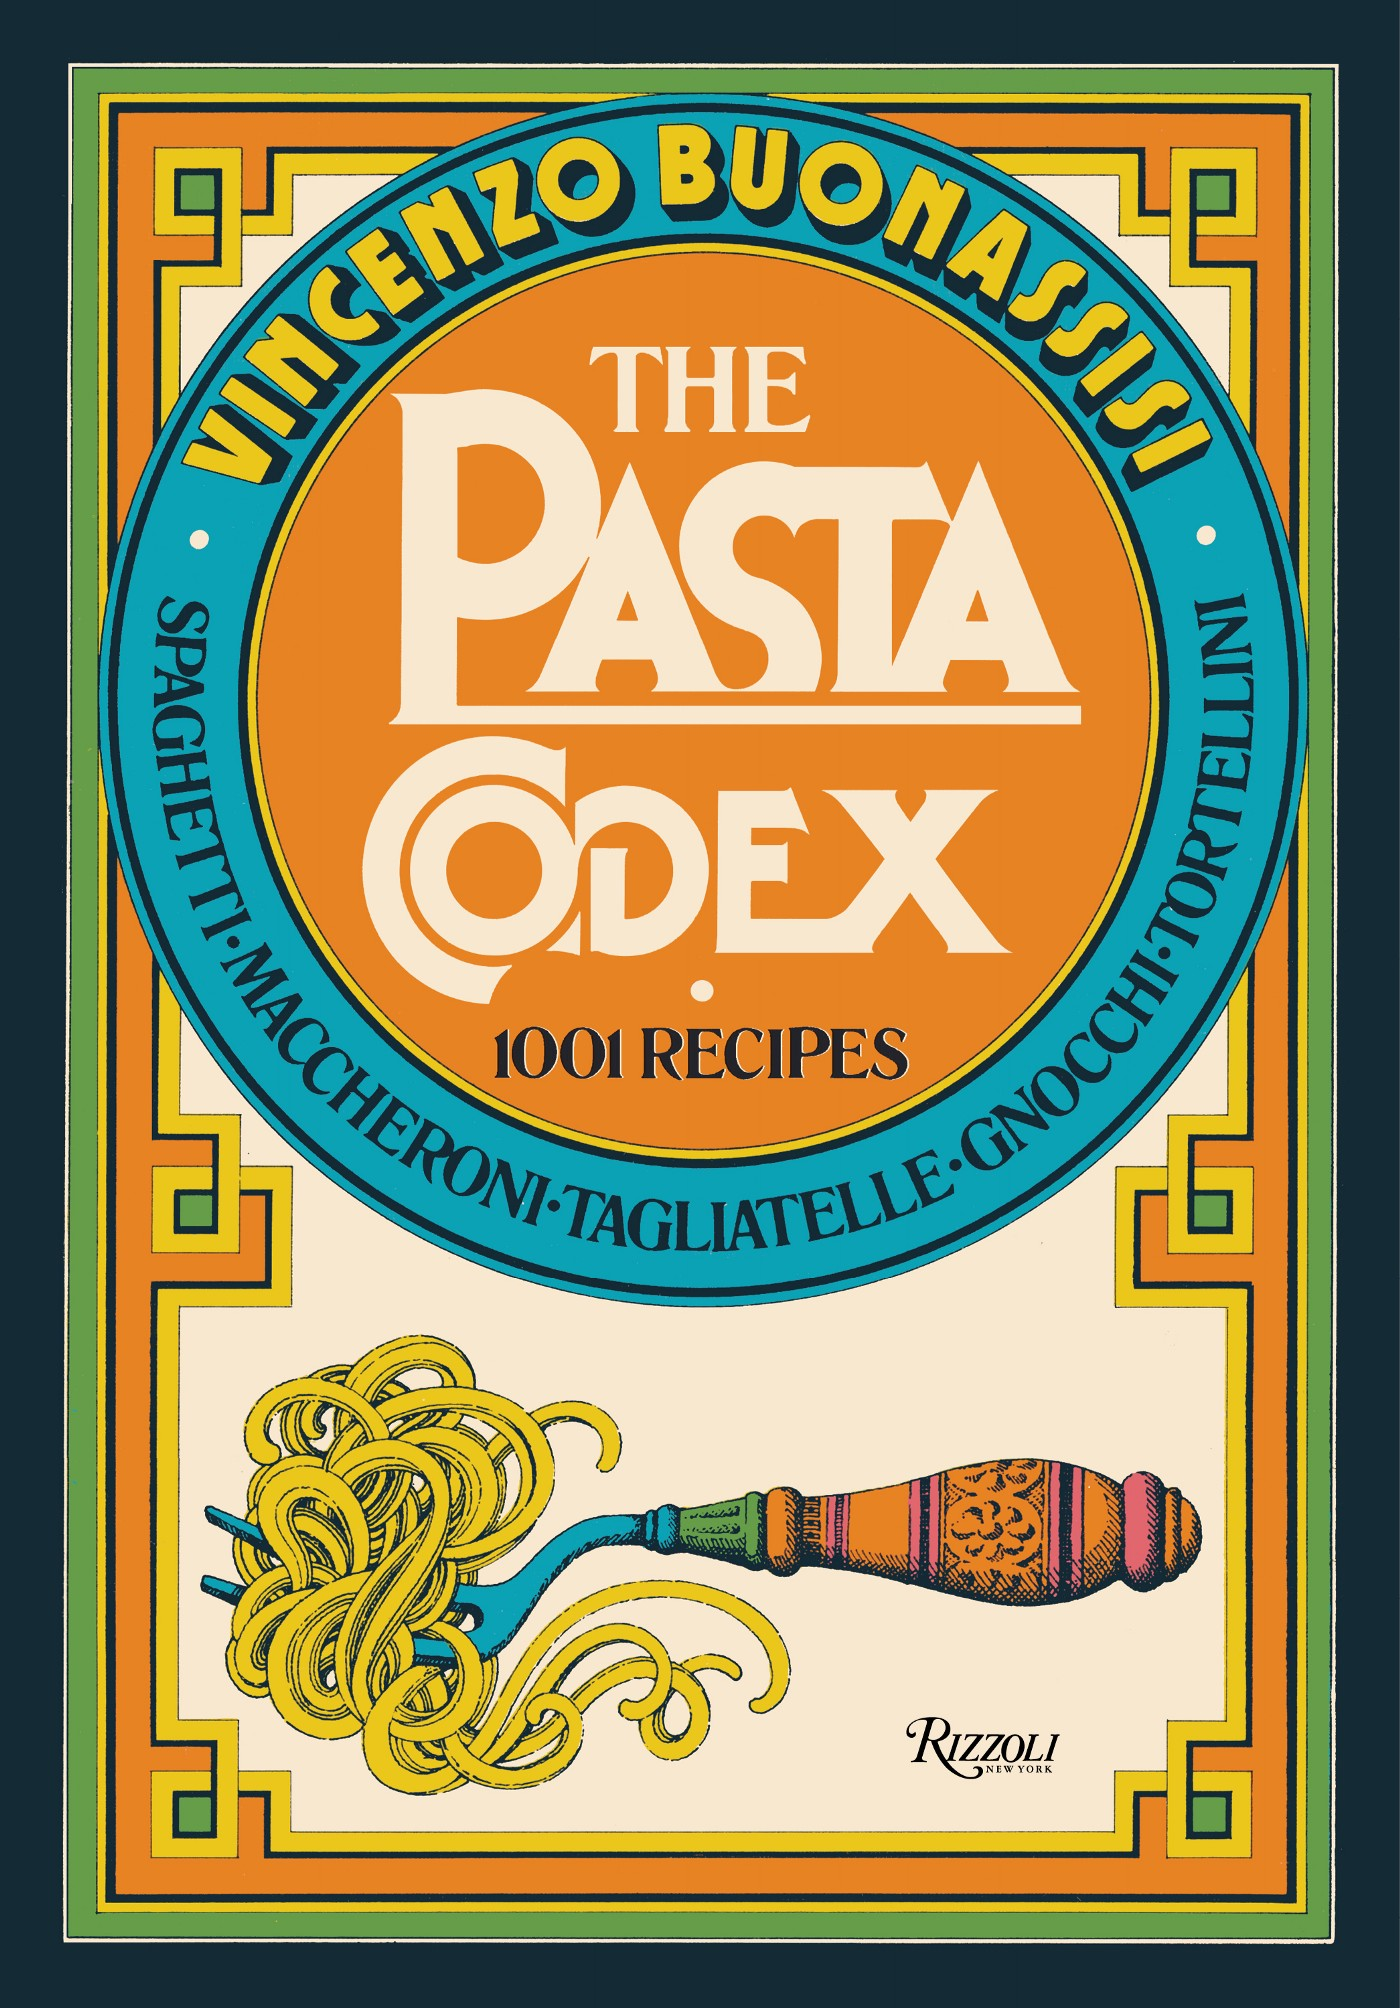 The cover of The Pasta Codex